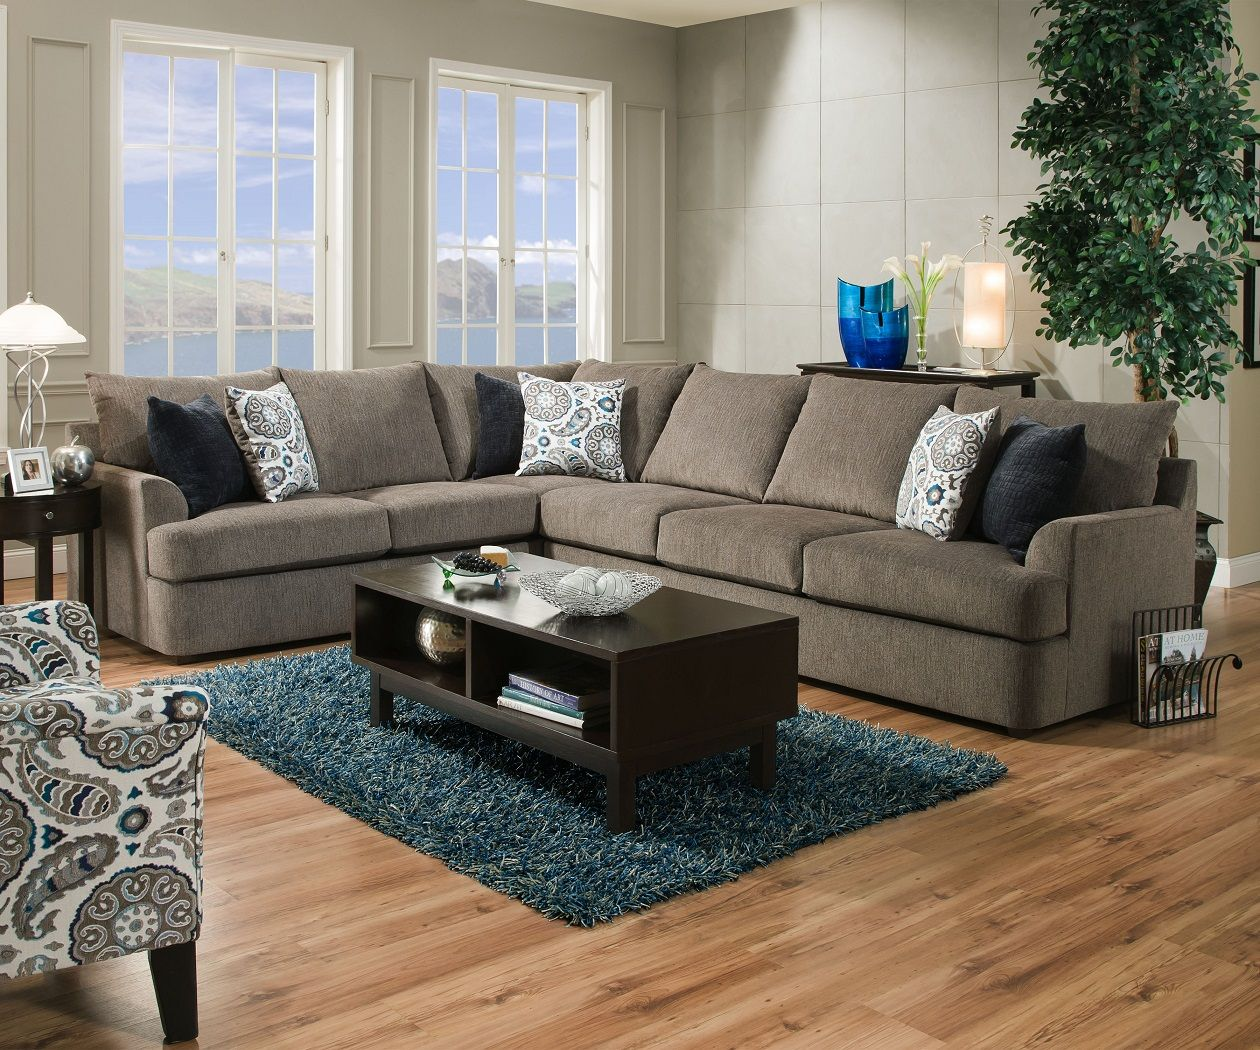 Charming Grandstand 8540 Simmons Beautyrest Sectional Sofa